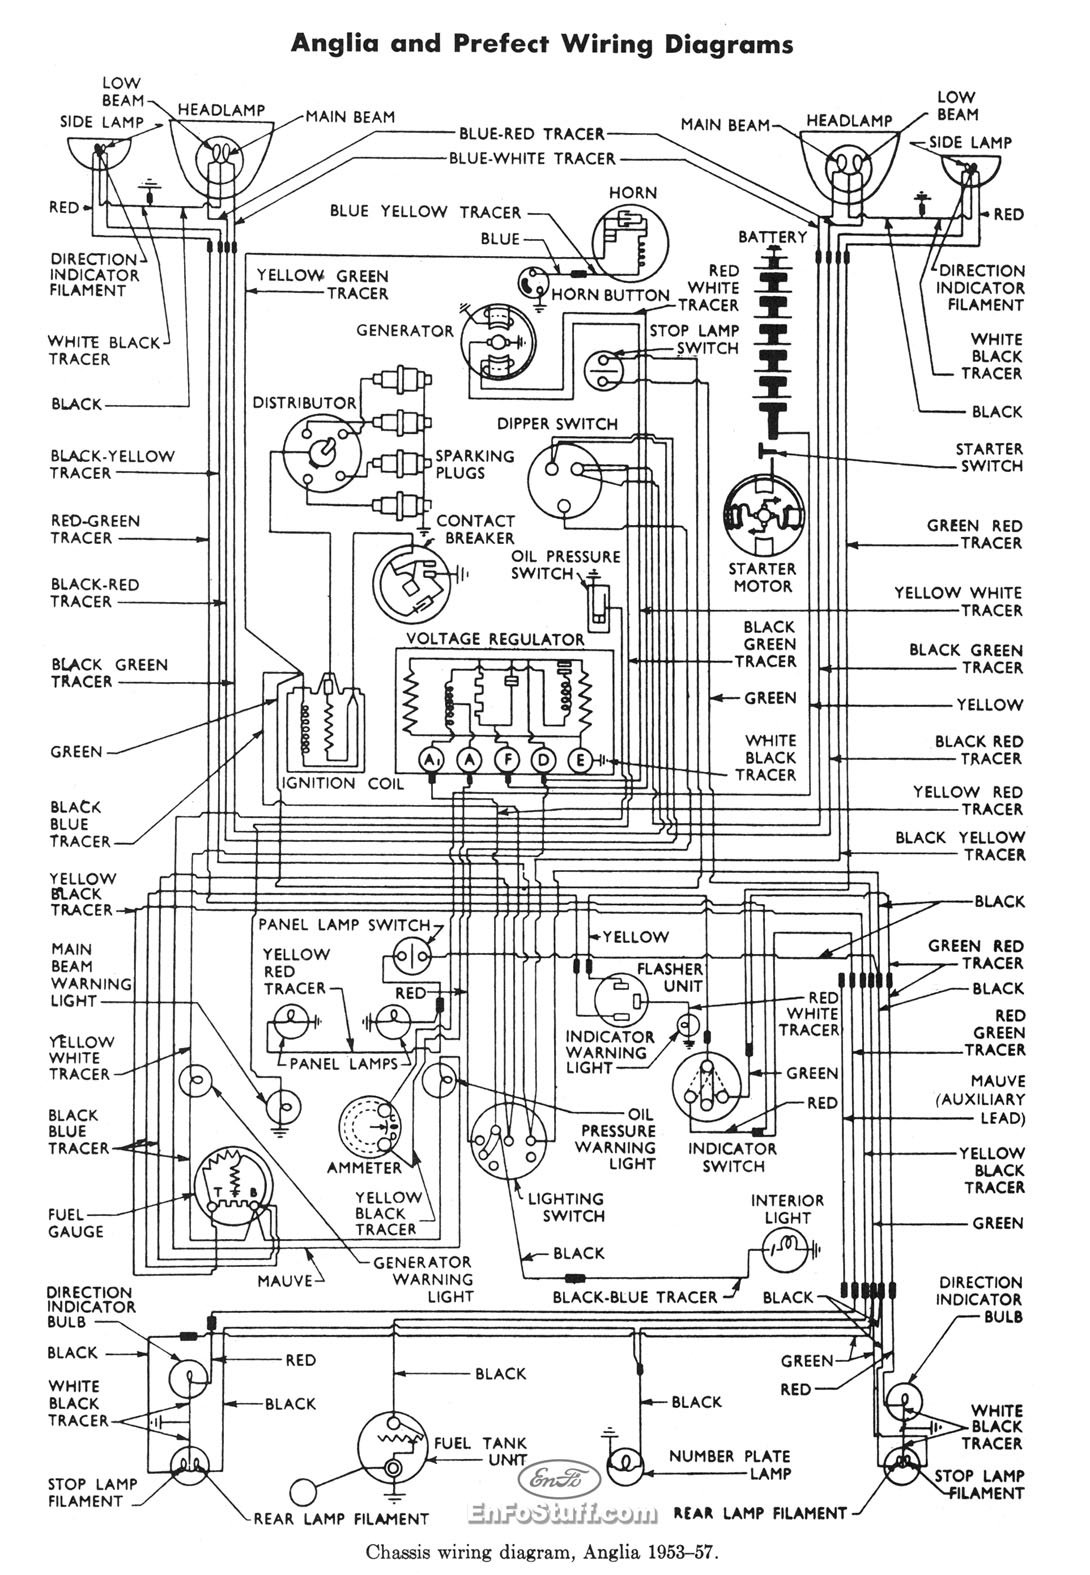 f800 wiring diagram general wiring diagram information u2022 rh velvetfive co uk 1995 ford f800 wiring diagram 1996 ford f800 wiring diagram